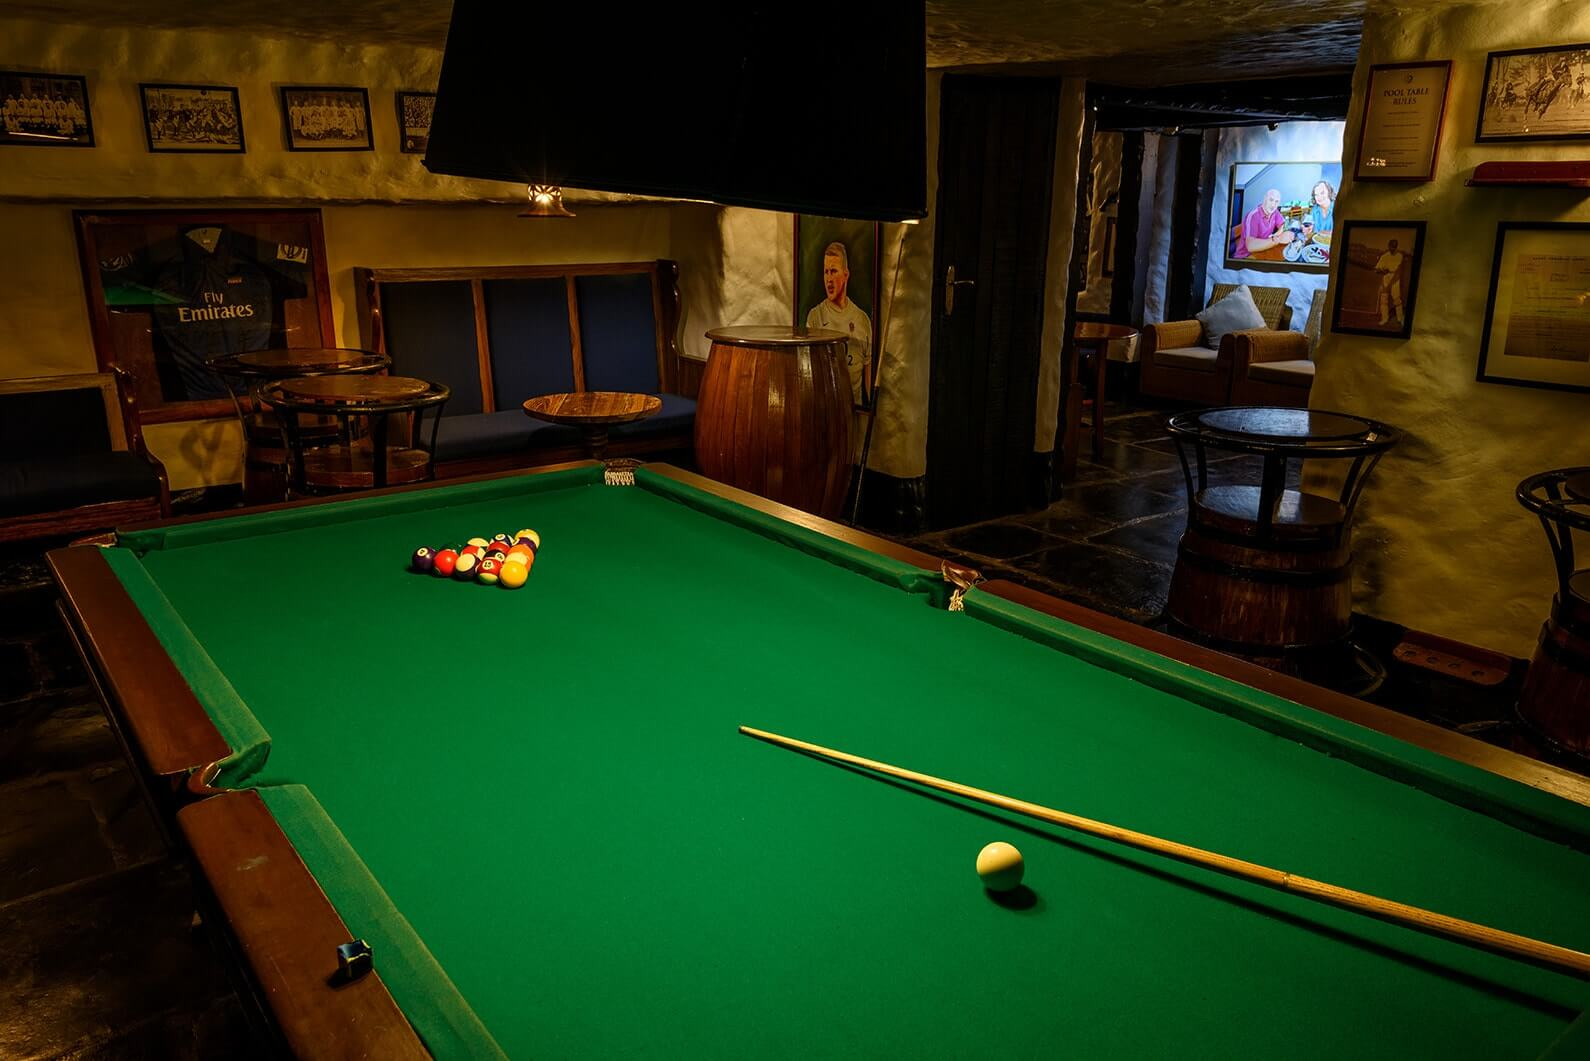 Pool Table at Attwood's Pub